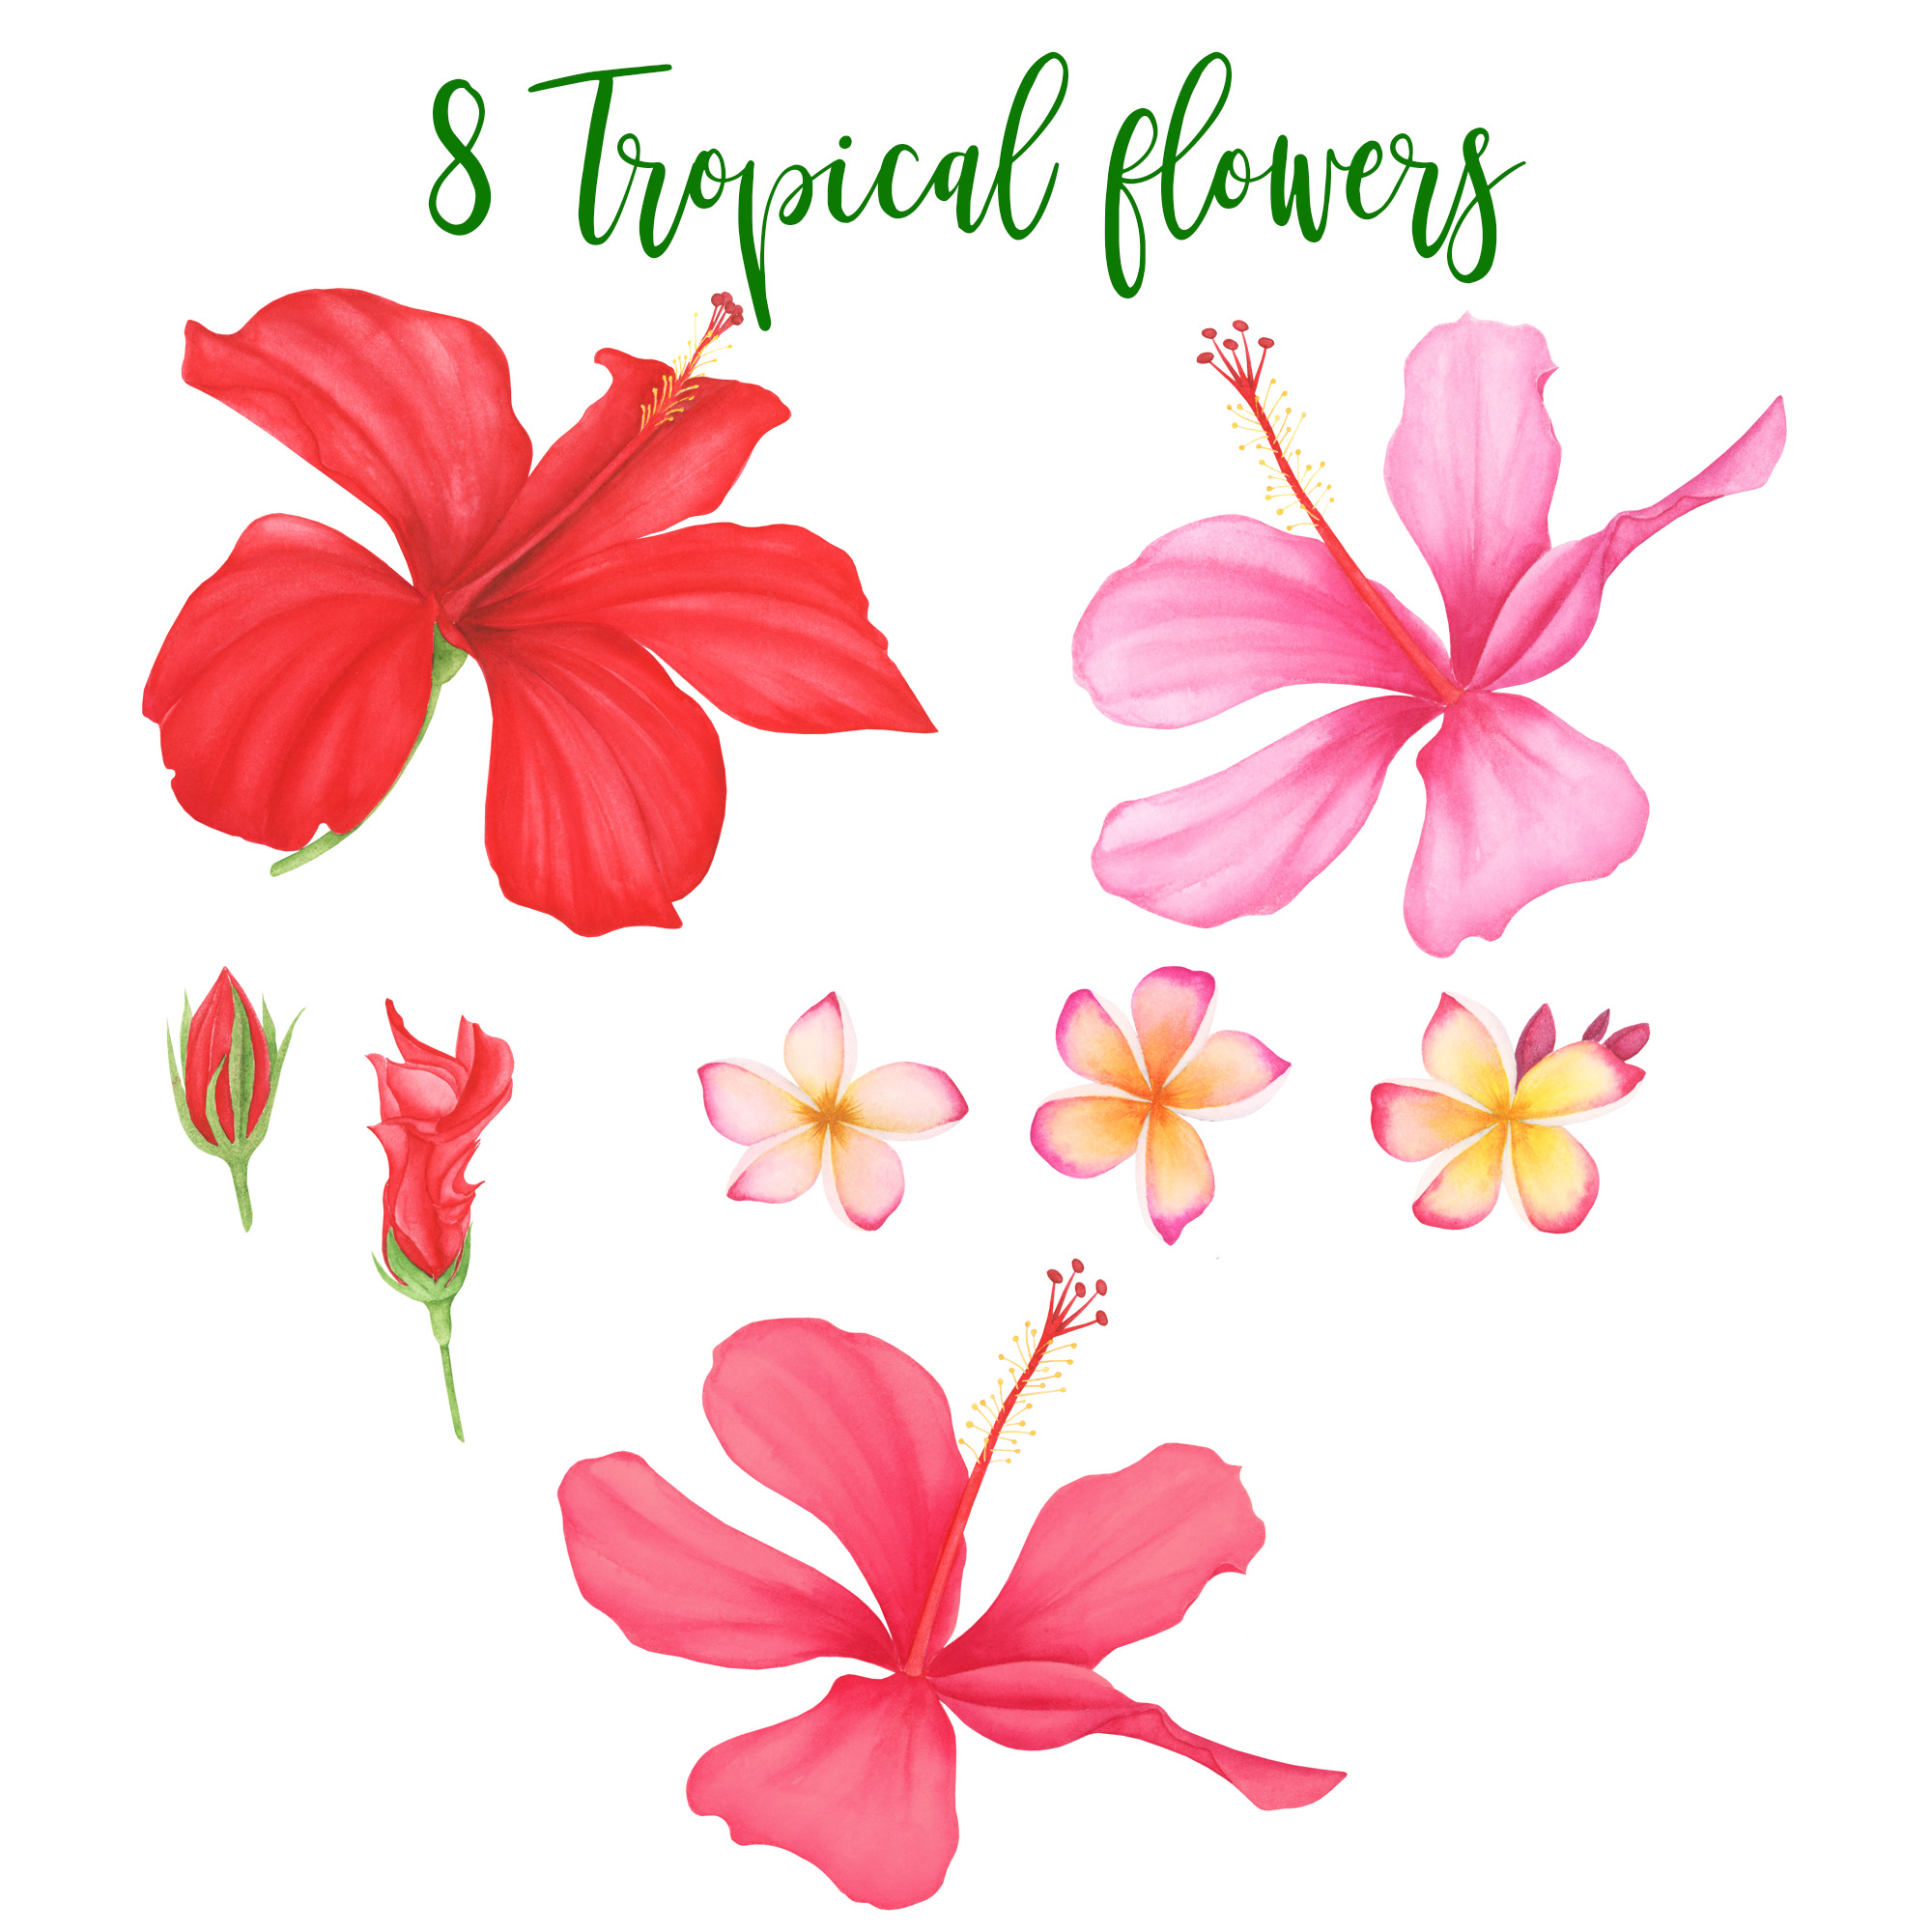 Tropical leaves and flowers clipart example image 3